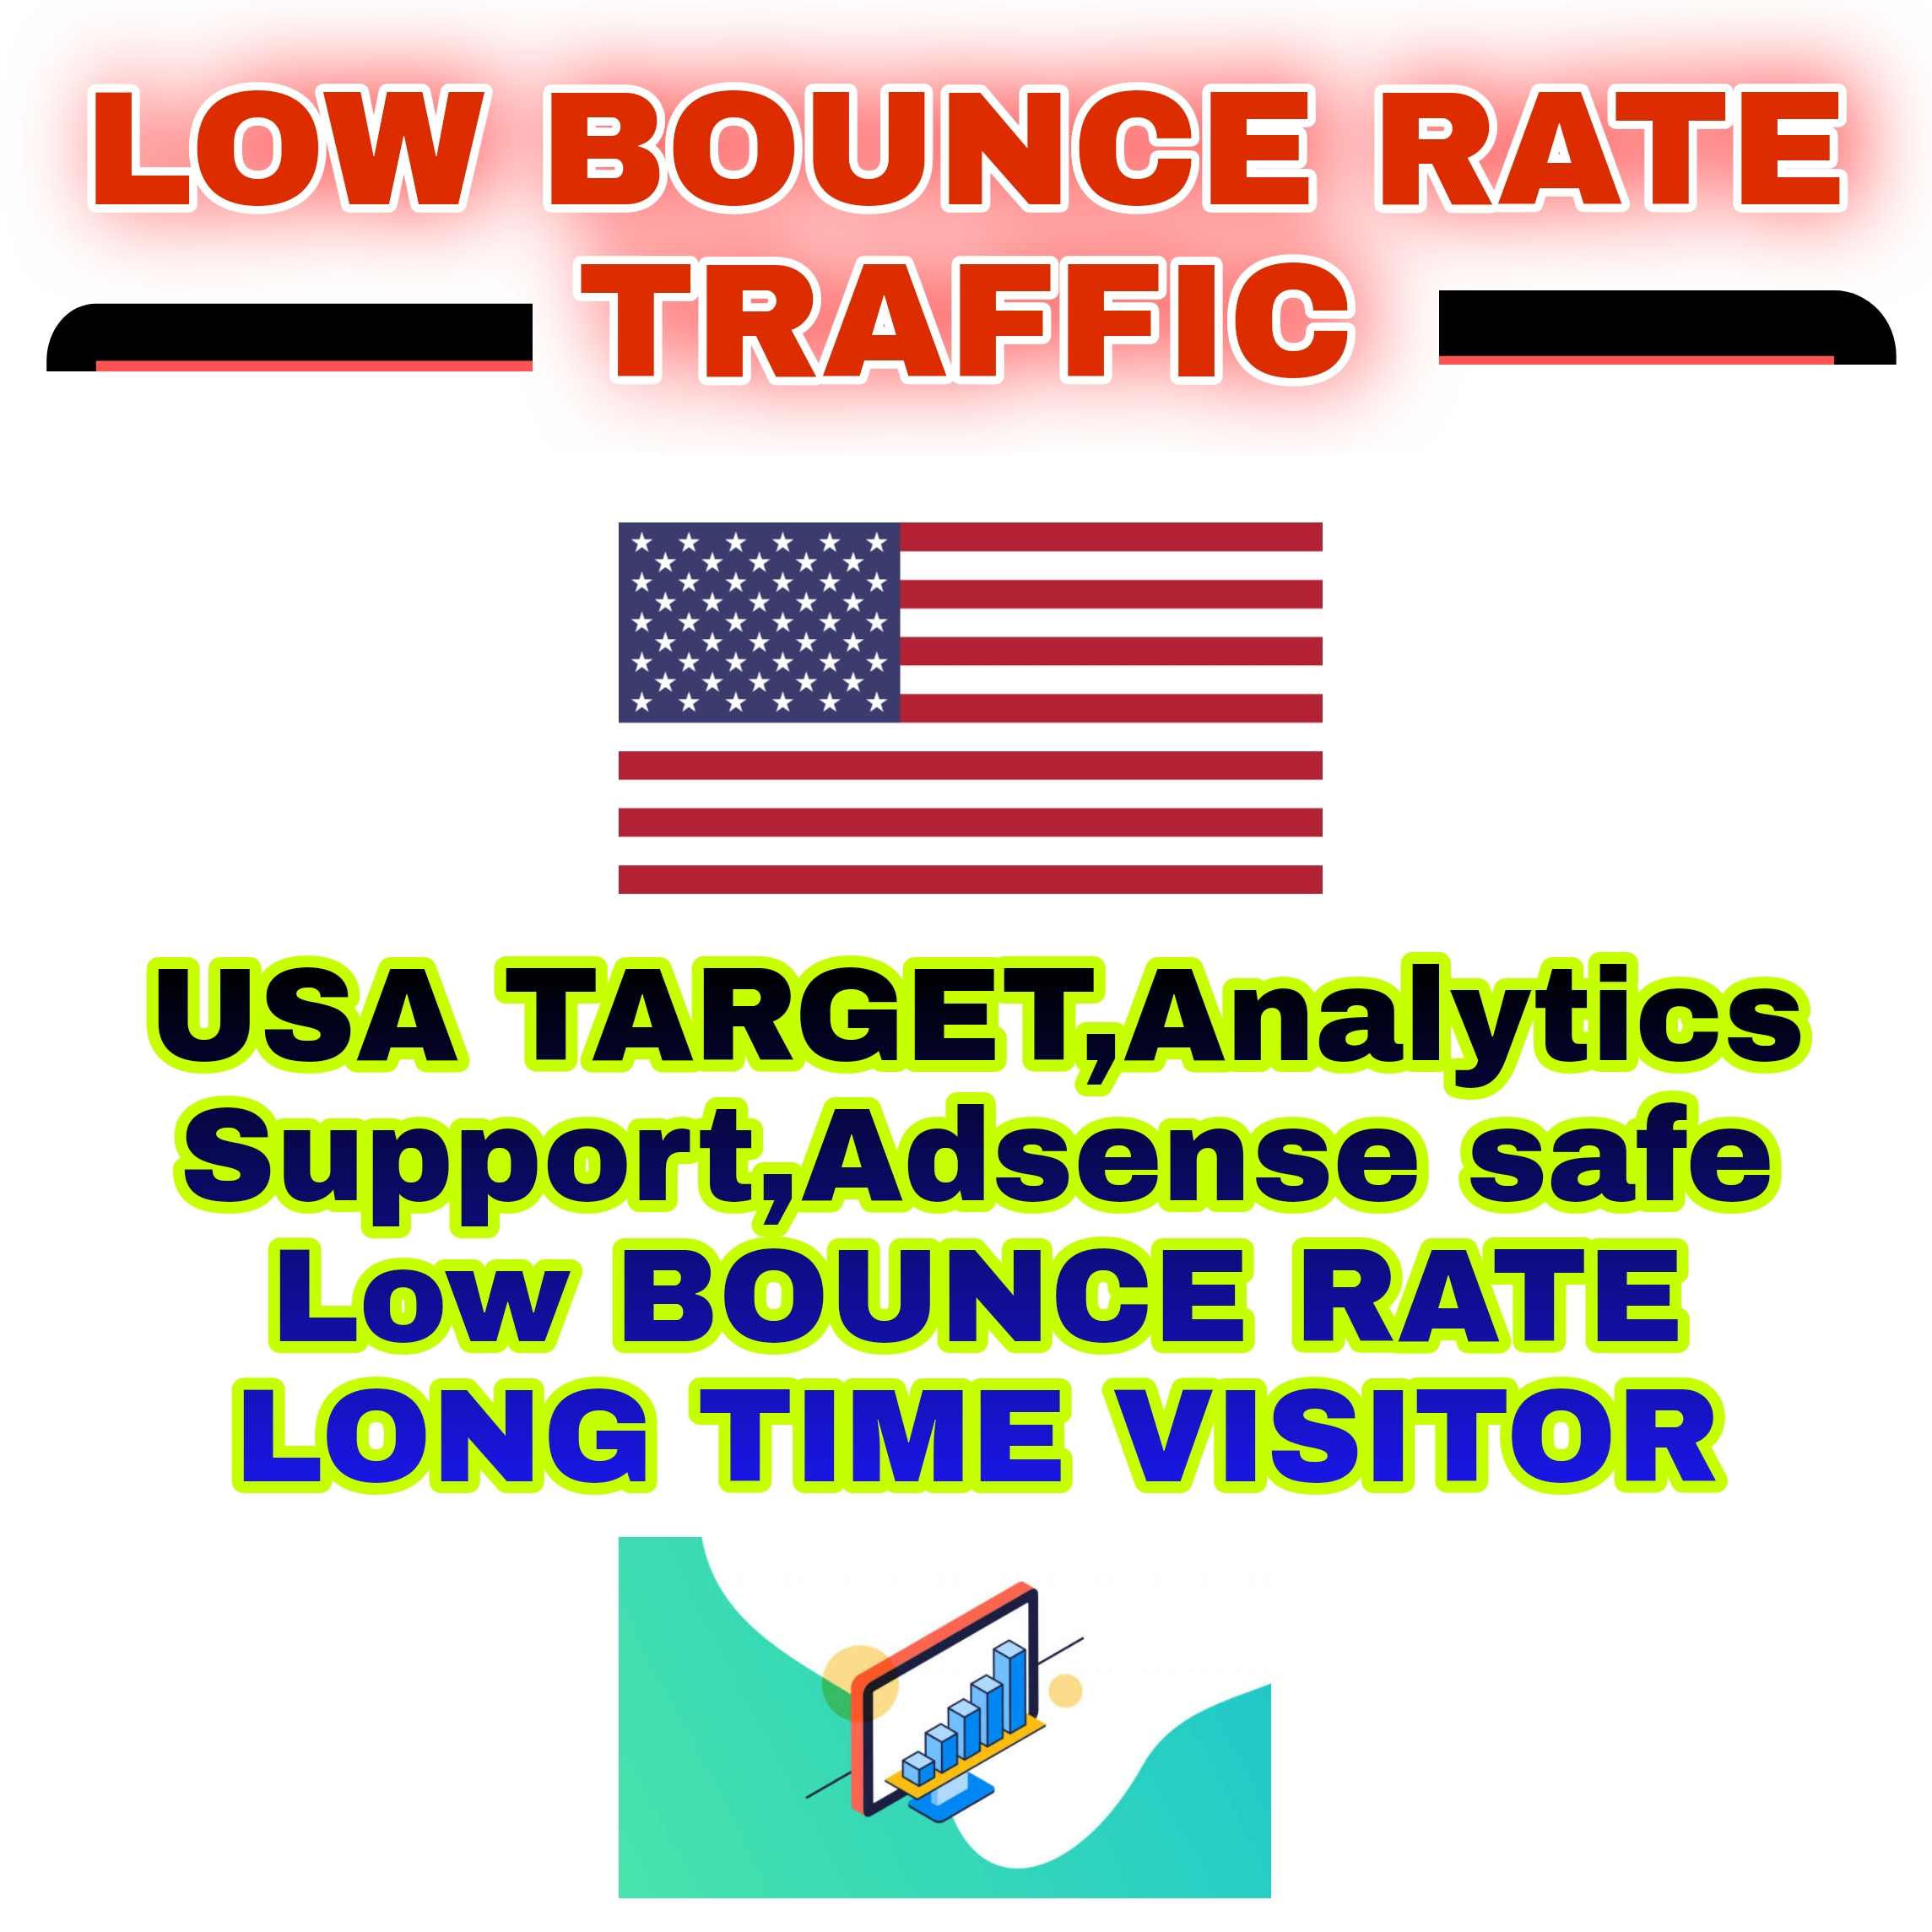 1000 Real & High Quality Usa Target Web Traffic - Adsense Safe, analytic Support